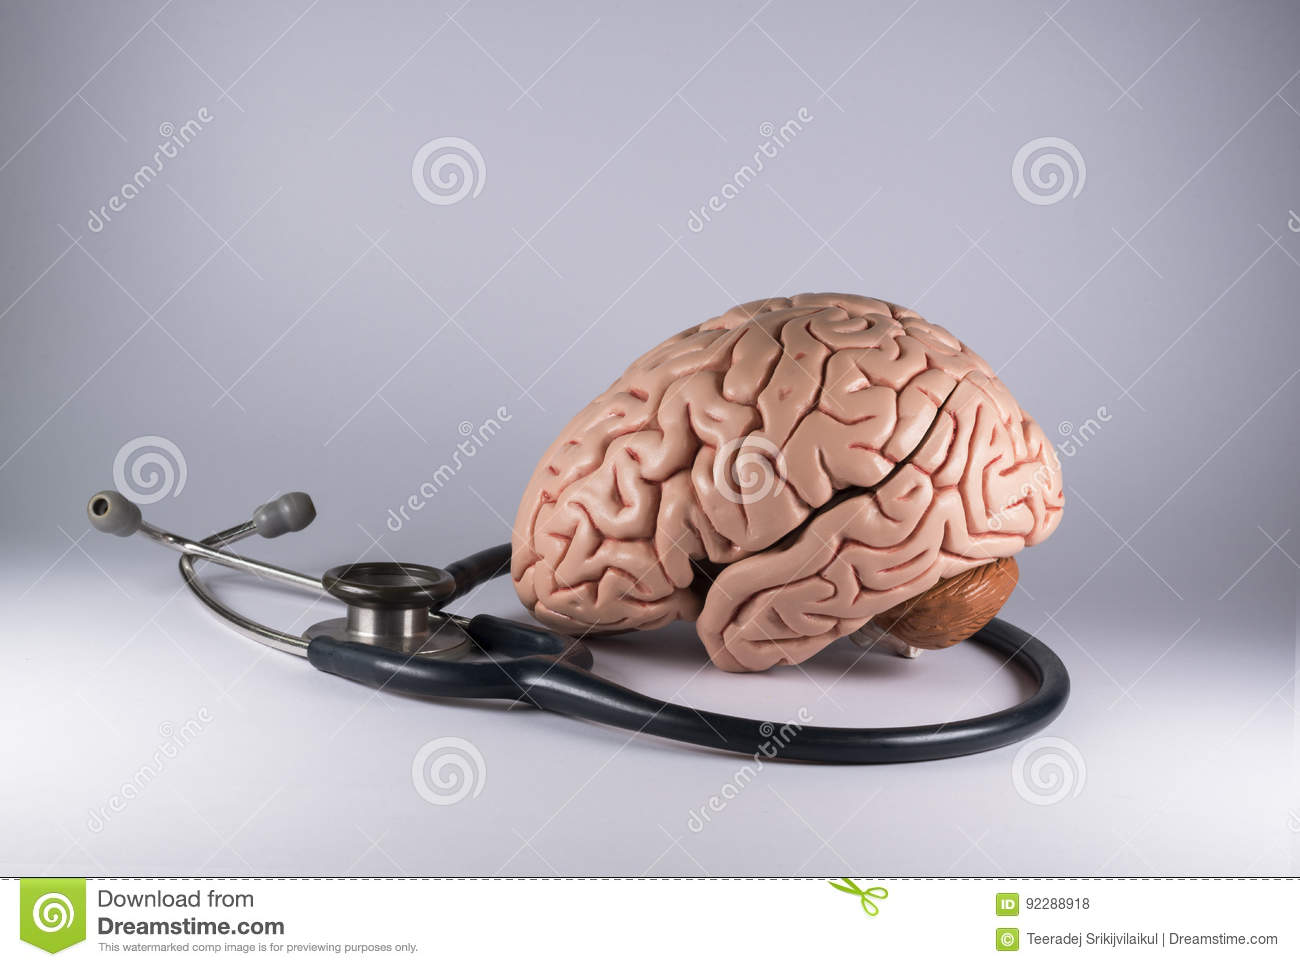 Human Brain Model And Stethoscope Stock Photo - Image of care, tools ...